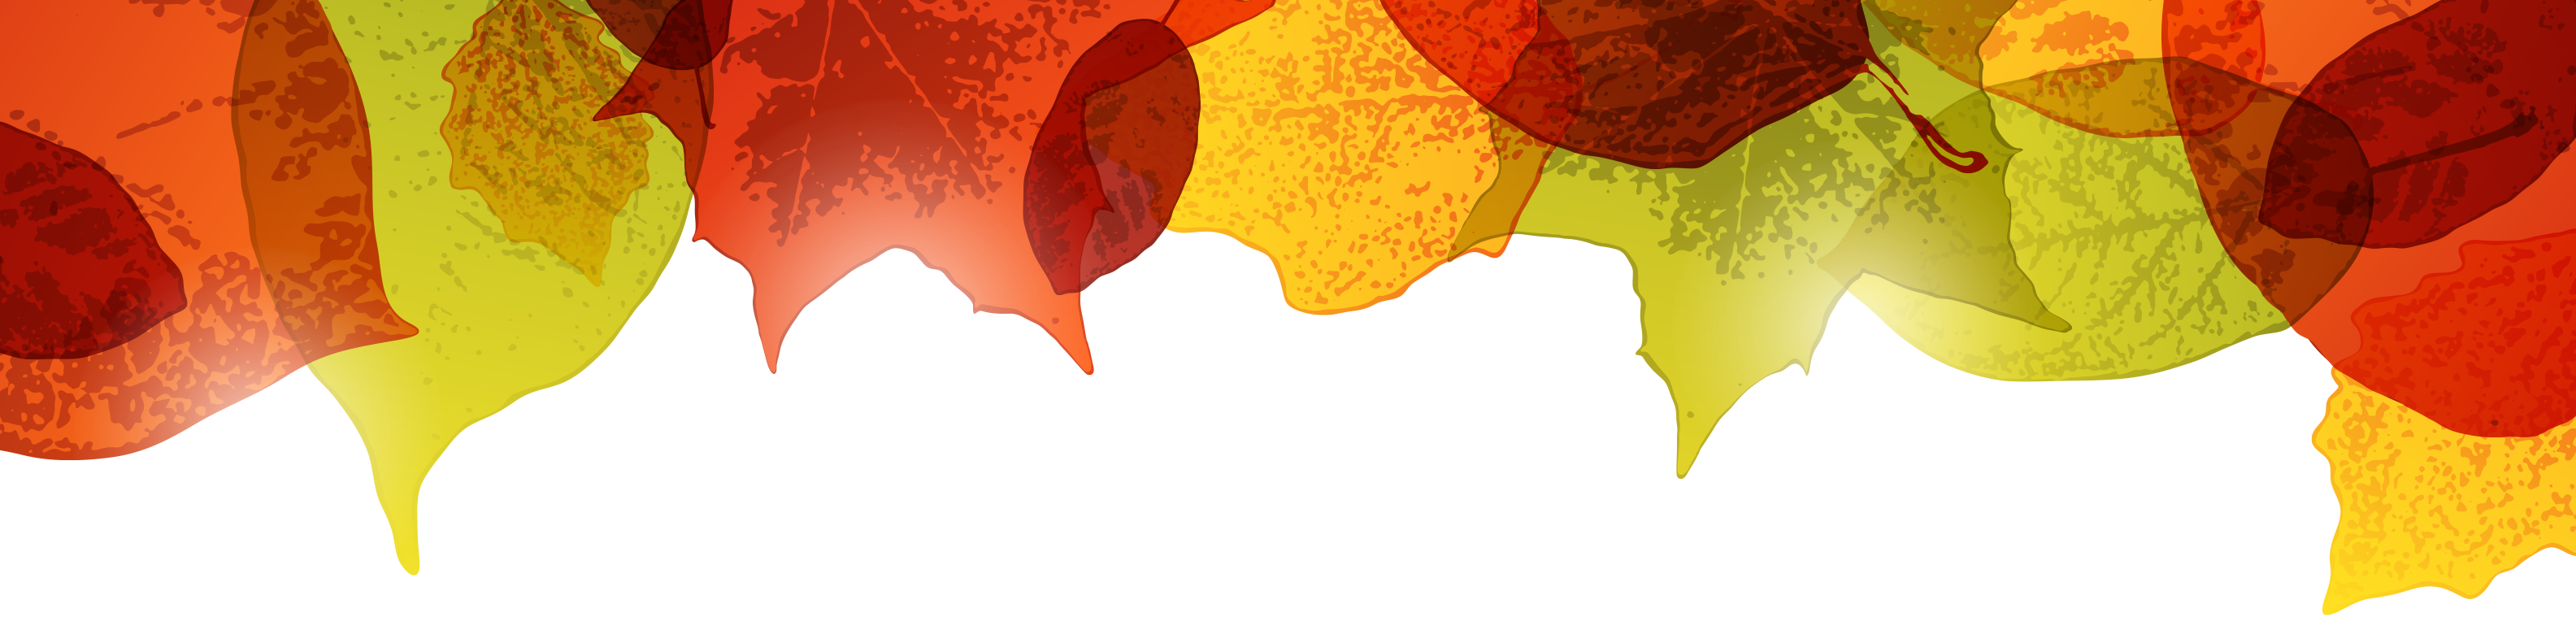 for free download. Fall leaves border png